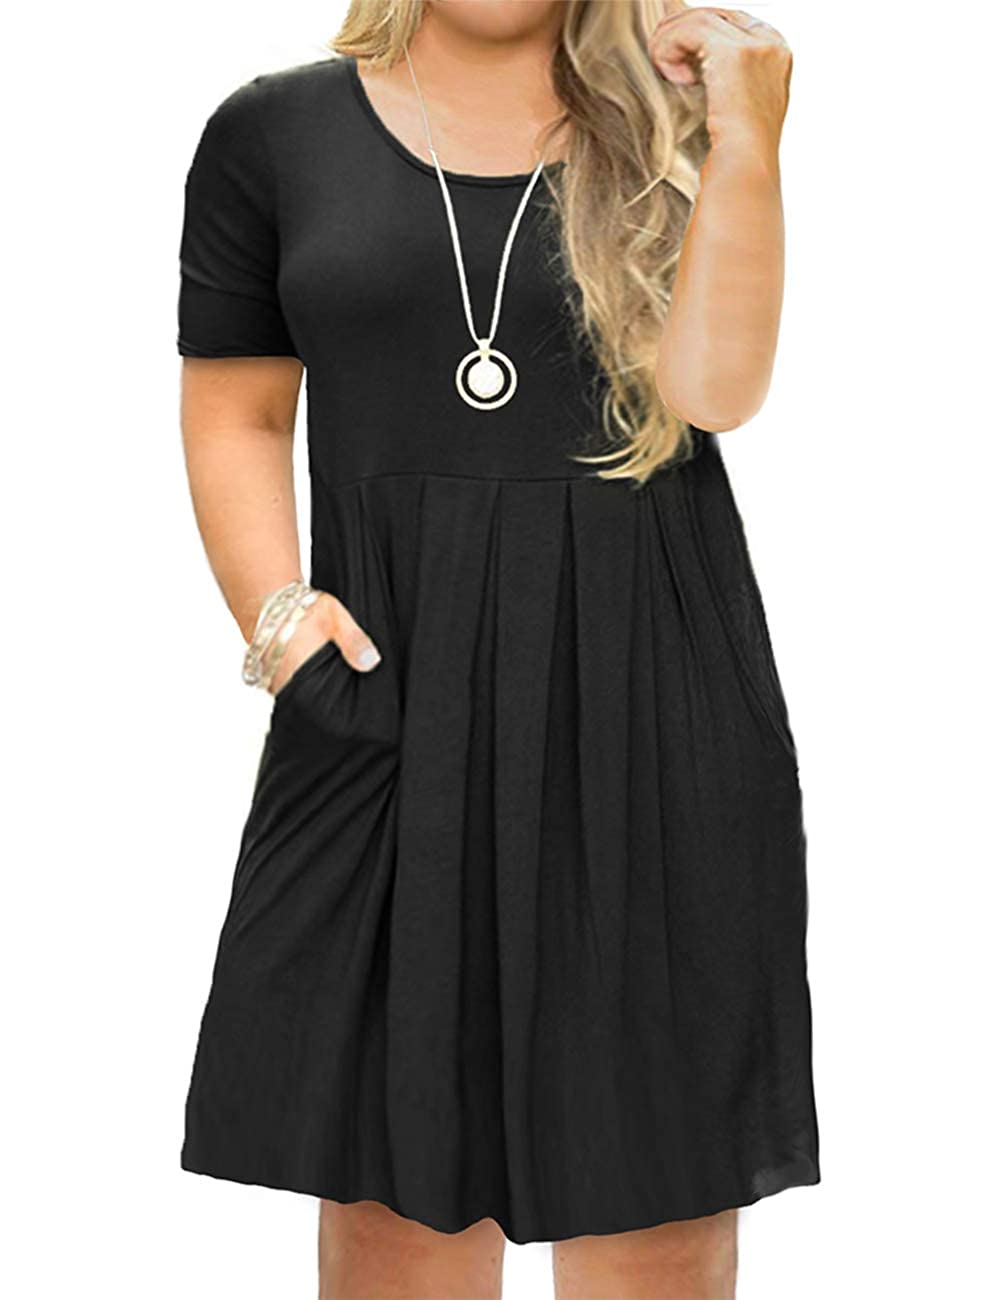 183d732df245 Tralilbee Women's Plus Size Short Sleeve Dress Casual Pleated Swing Dresses  with Pockets at Amazon Women's Clothing store: